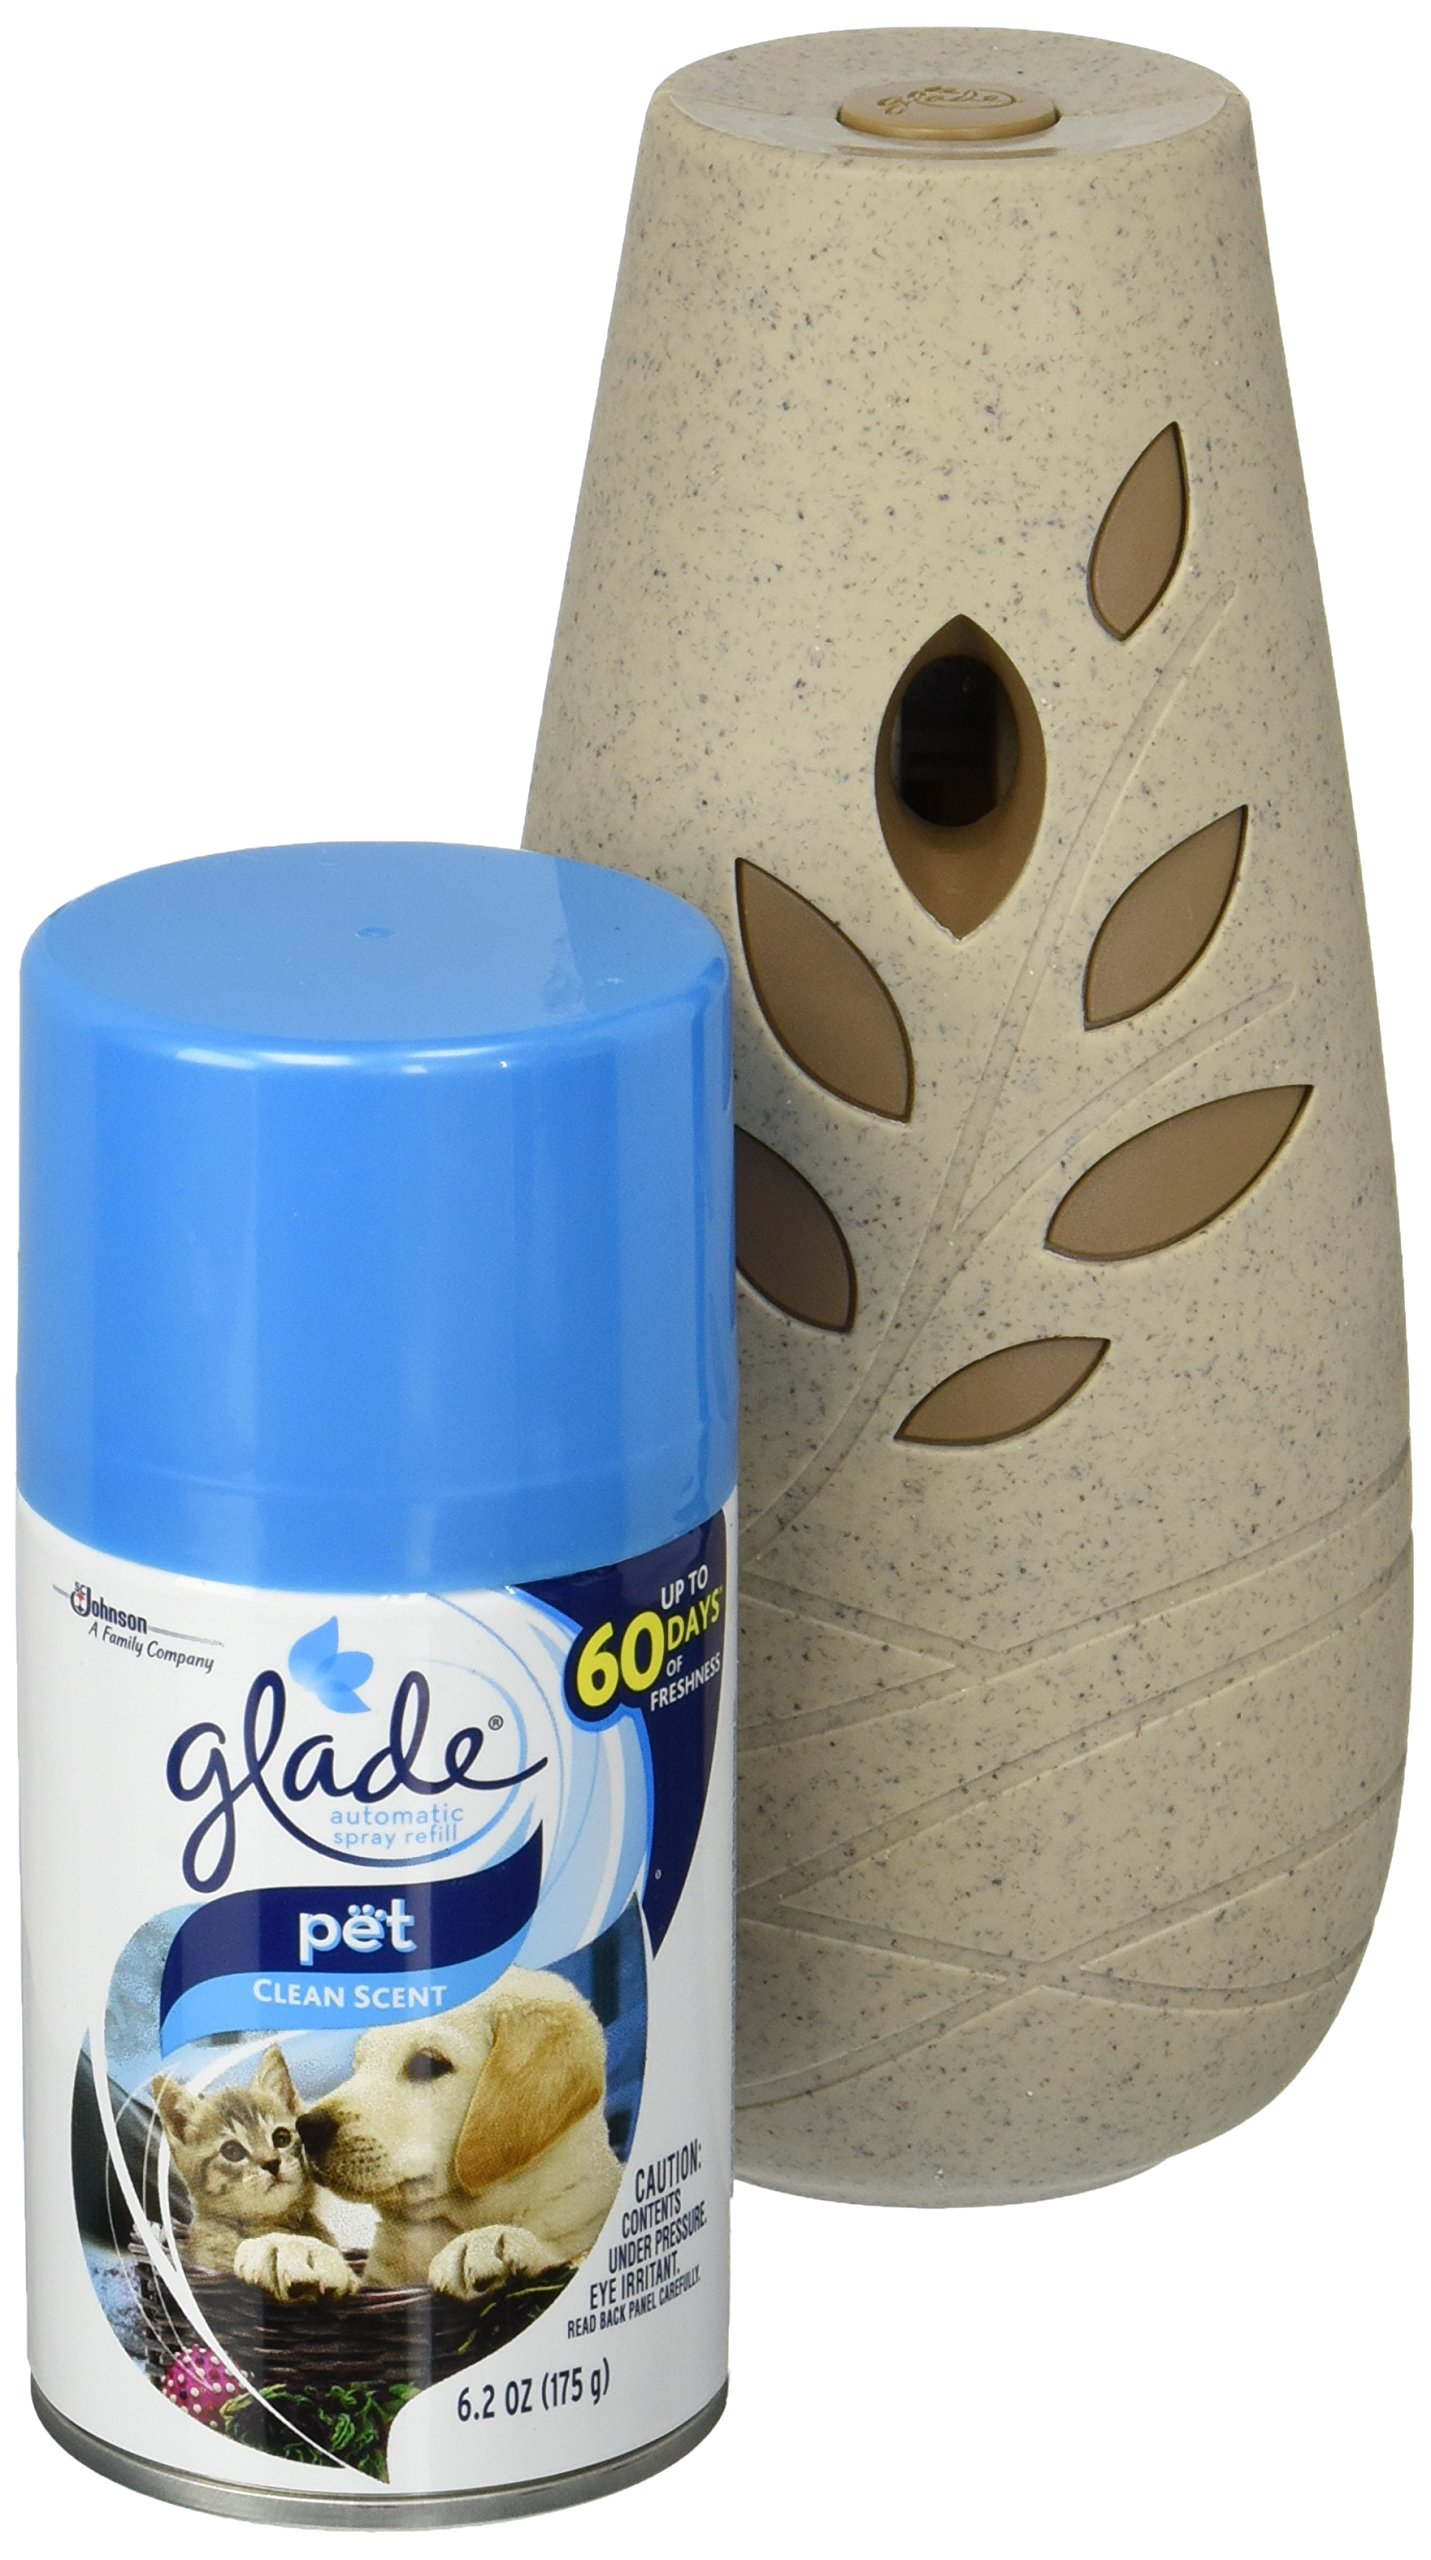 Glade Automatic Spray Air Freshener Starter Kit, Pet Clean Scent, 6.2 oz